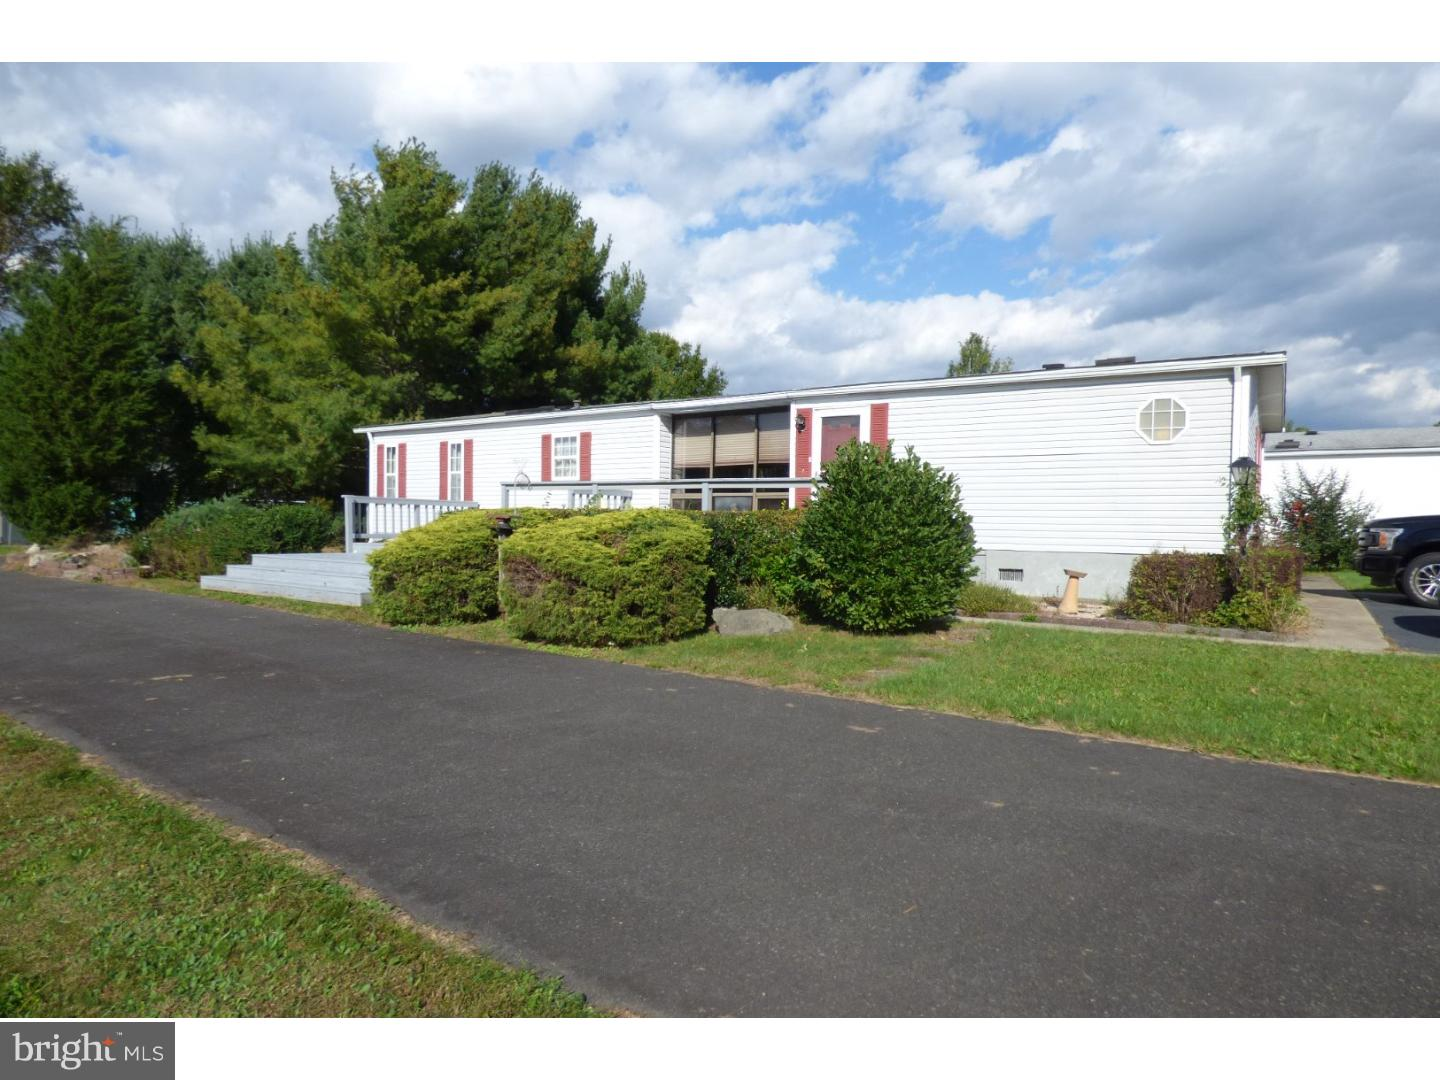 411 W 7TH STREET, RED HILL, PA 18076